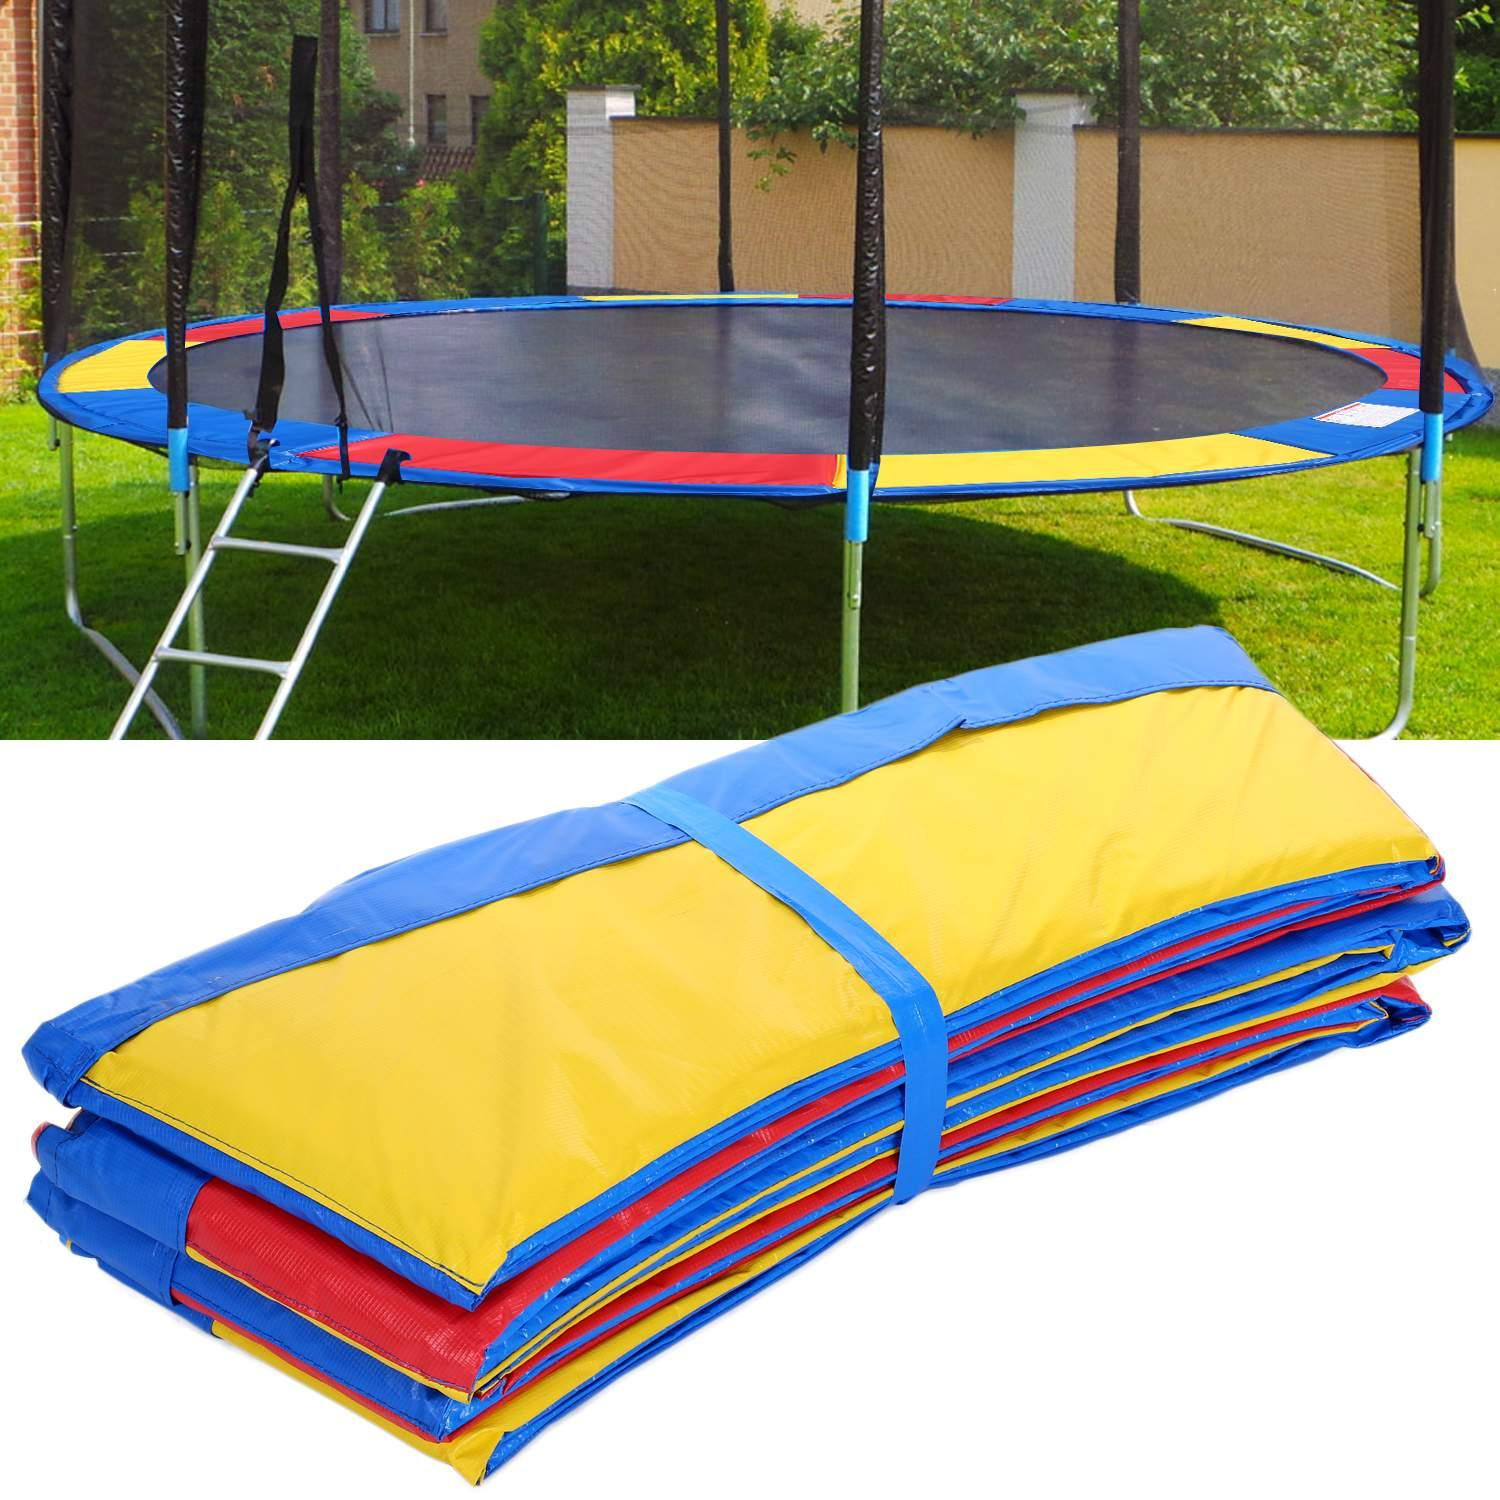 10ft and 12ft trampoline cover replacement rain cover weather cover